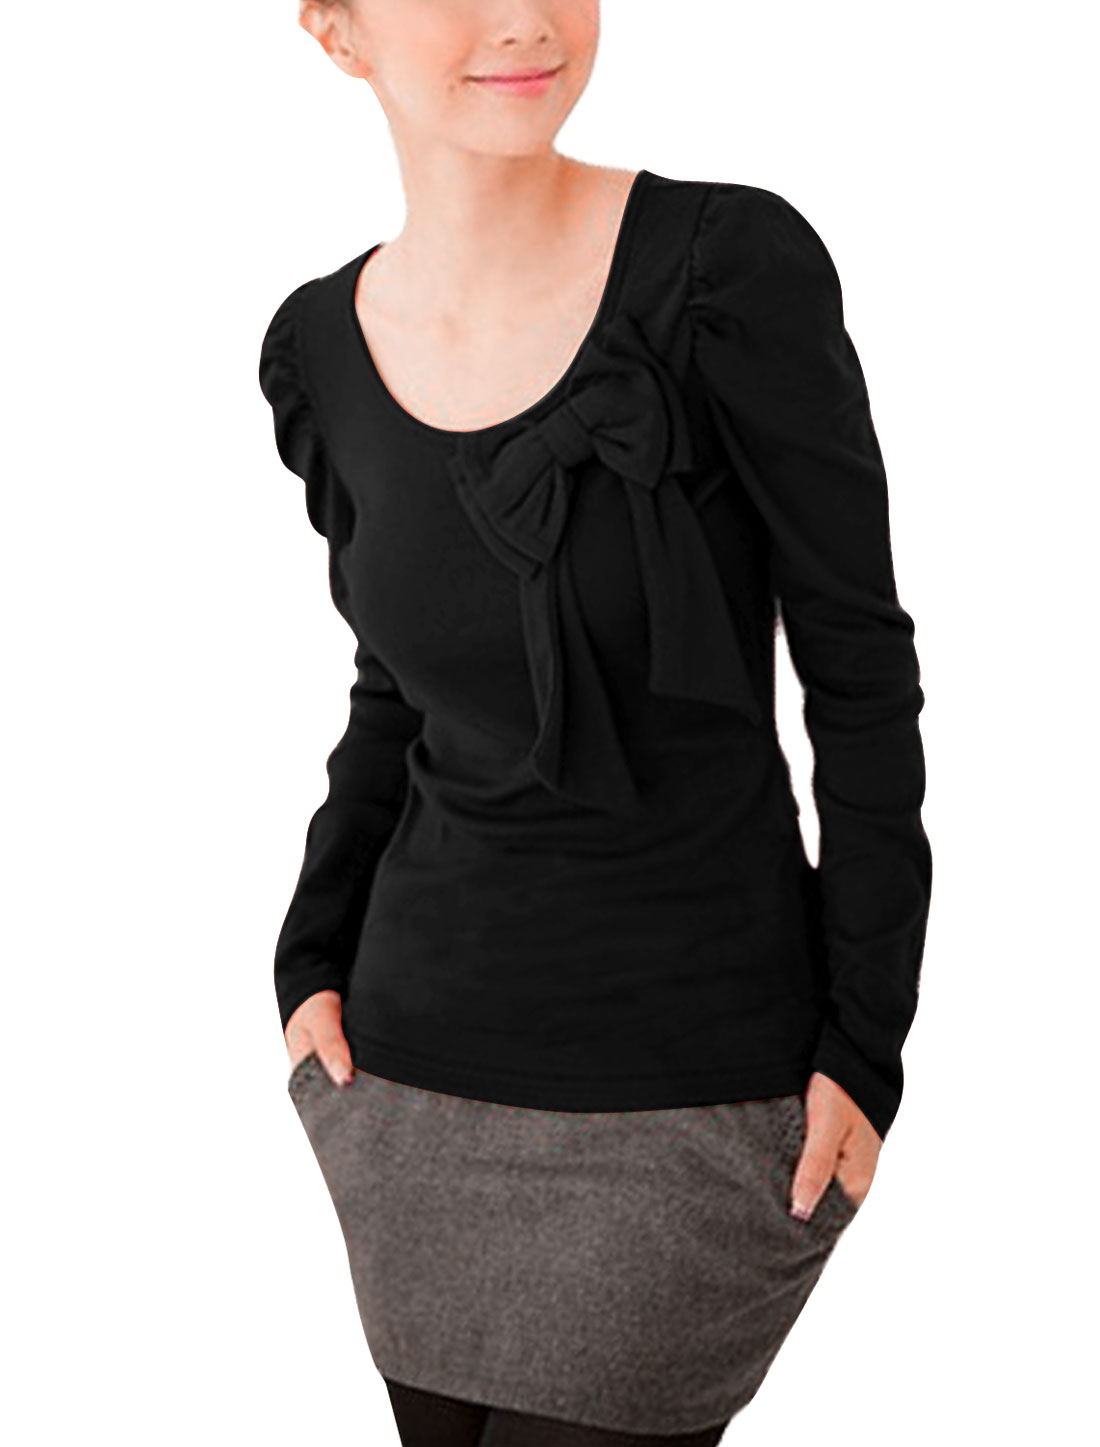 Sweet Puff Sleeves Bowknot Decor Top for Ladies Black XL